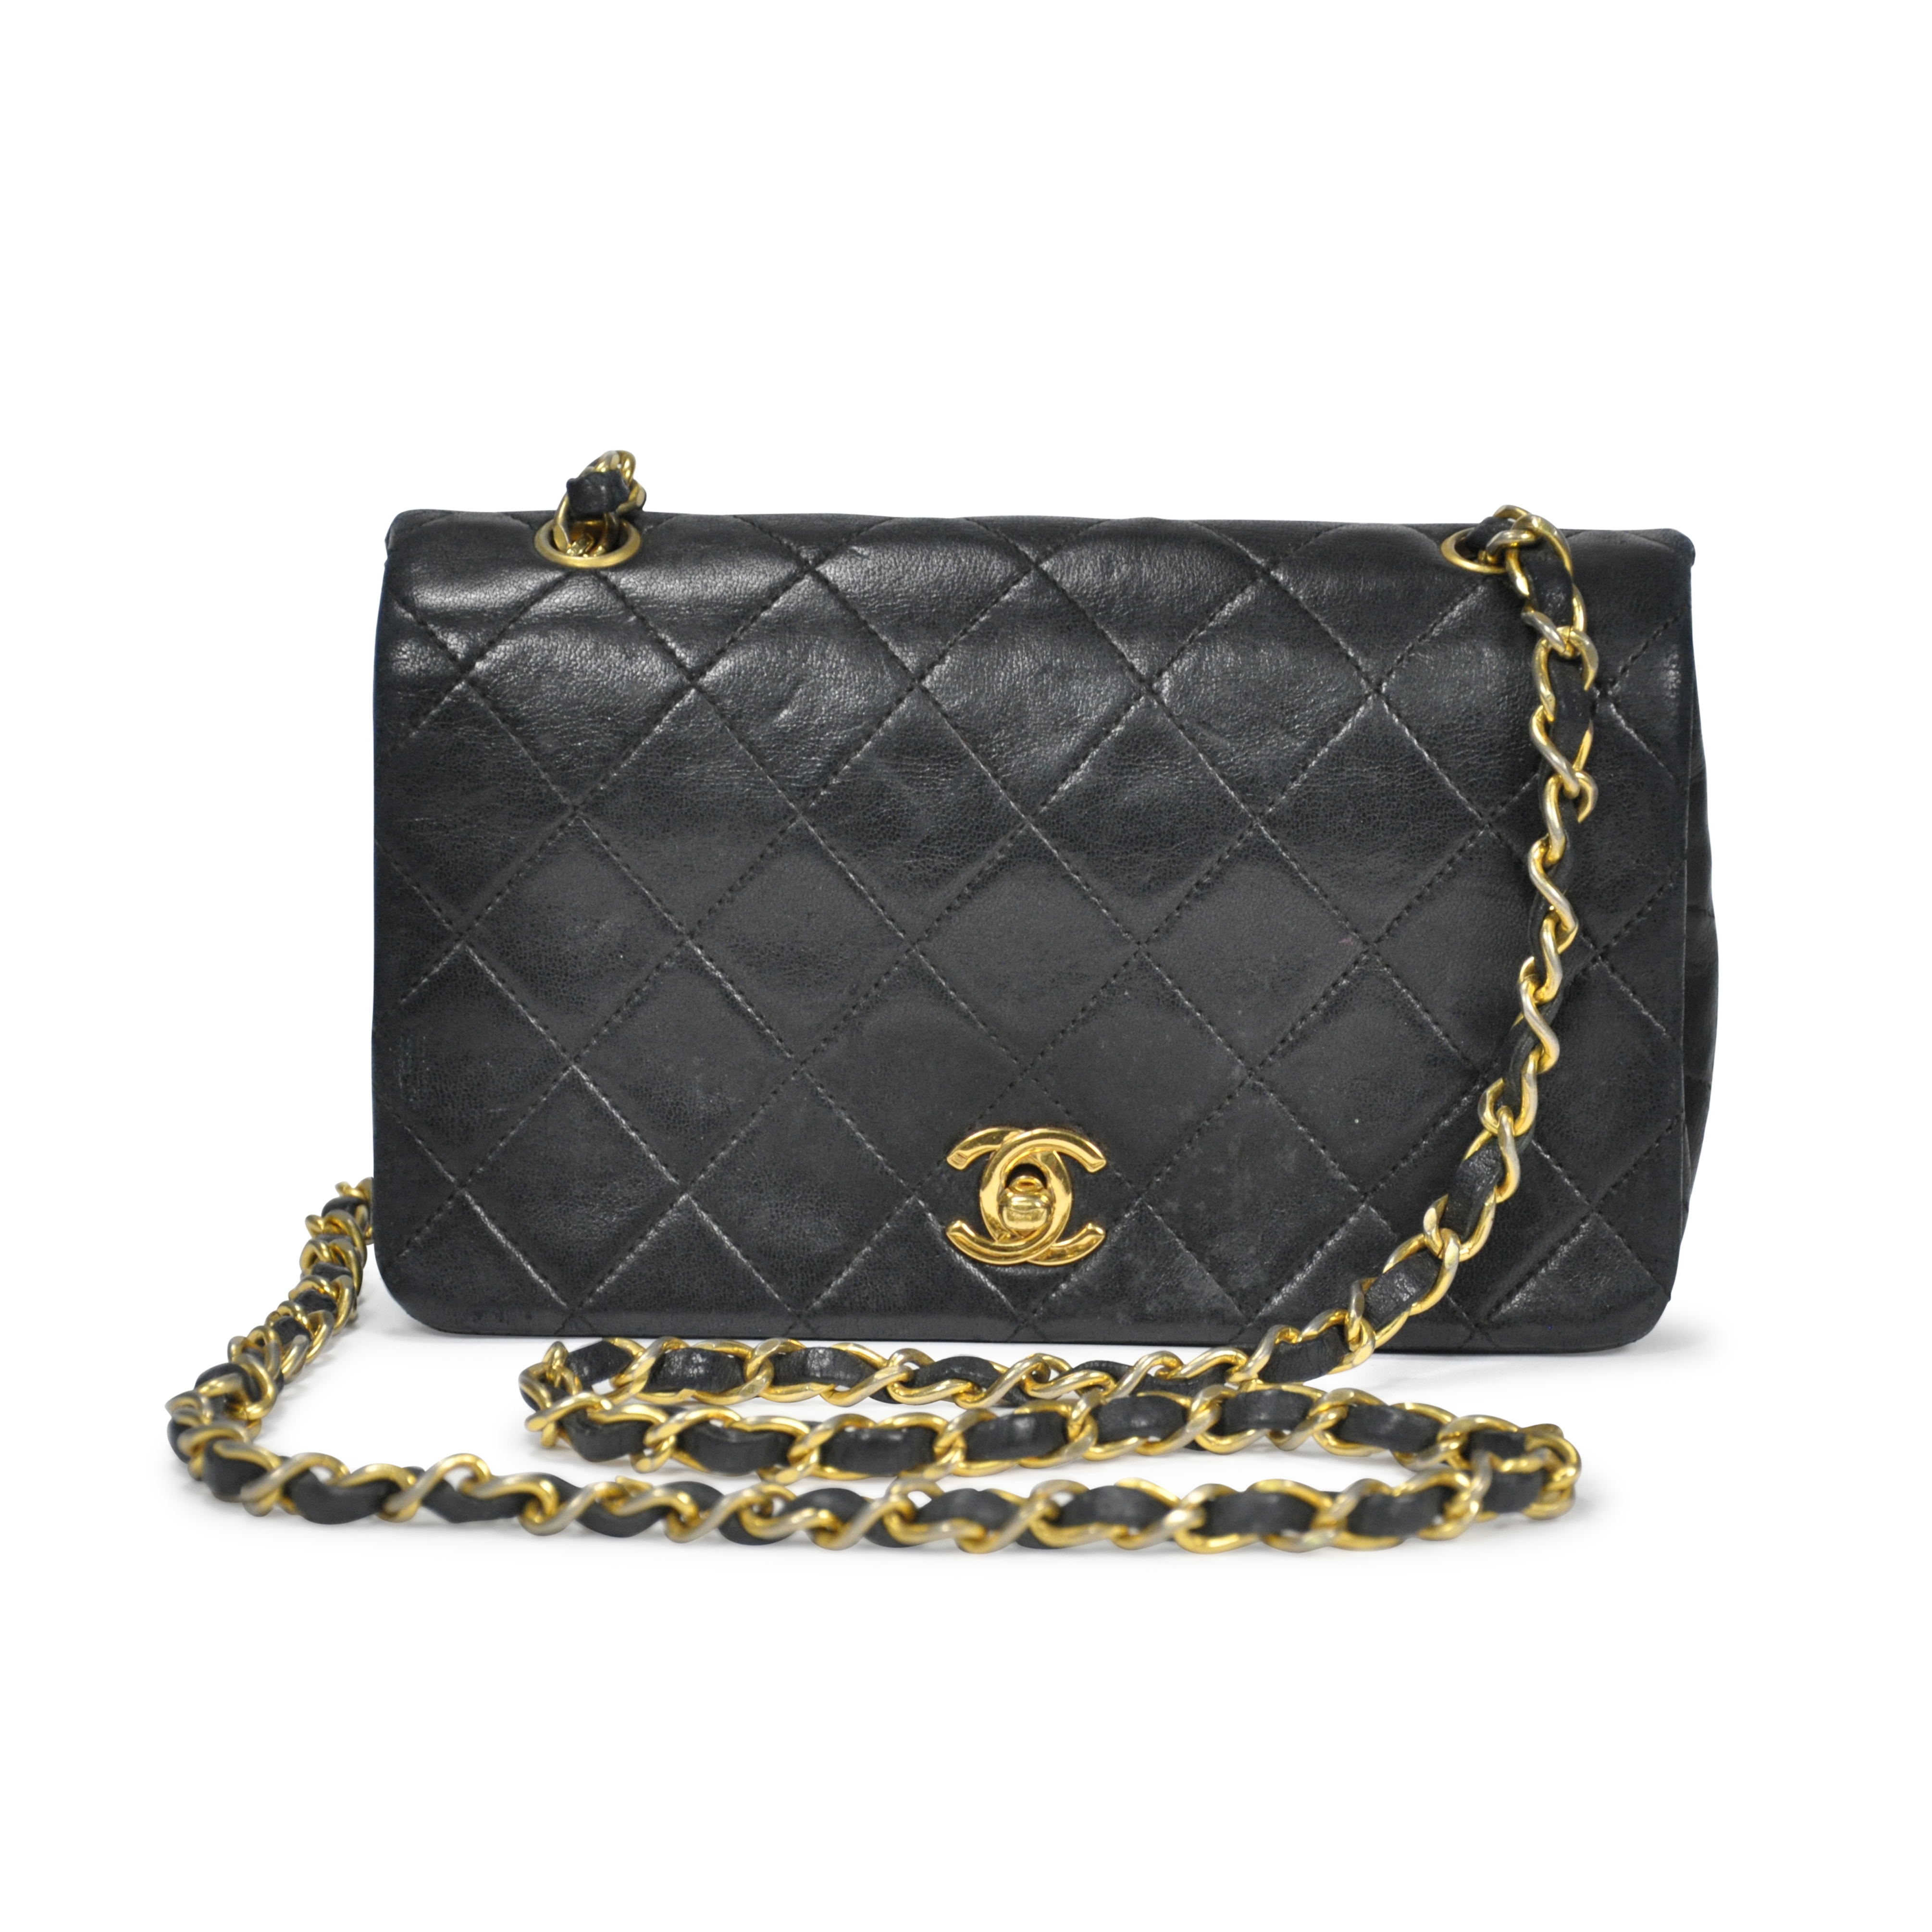 5adeff06bc057f Authentic Vintage Chanel Mini Single Flap Crossbody (PSS-201-00004) | THE  FIFTH COLLECTION